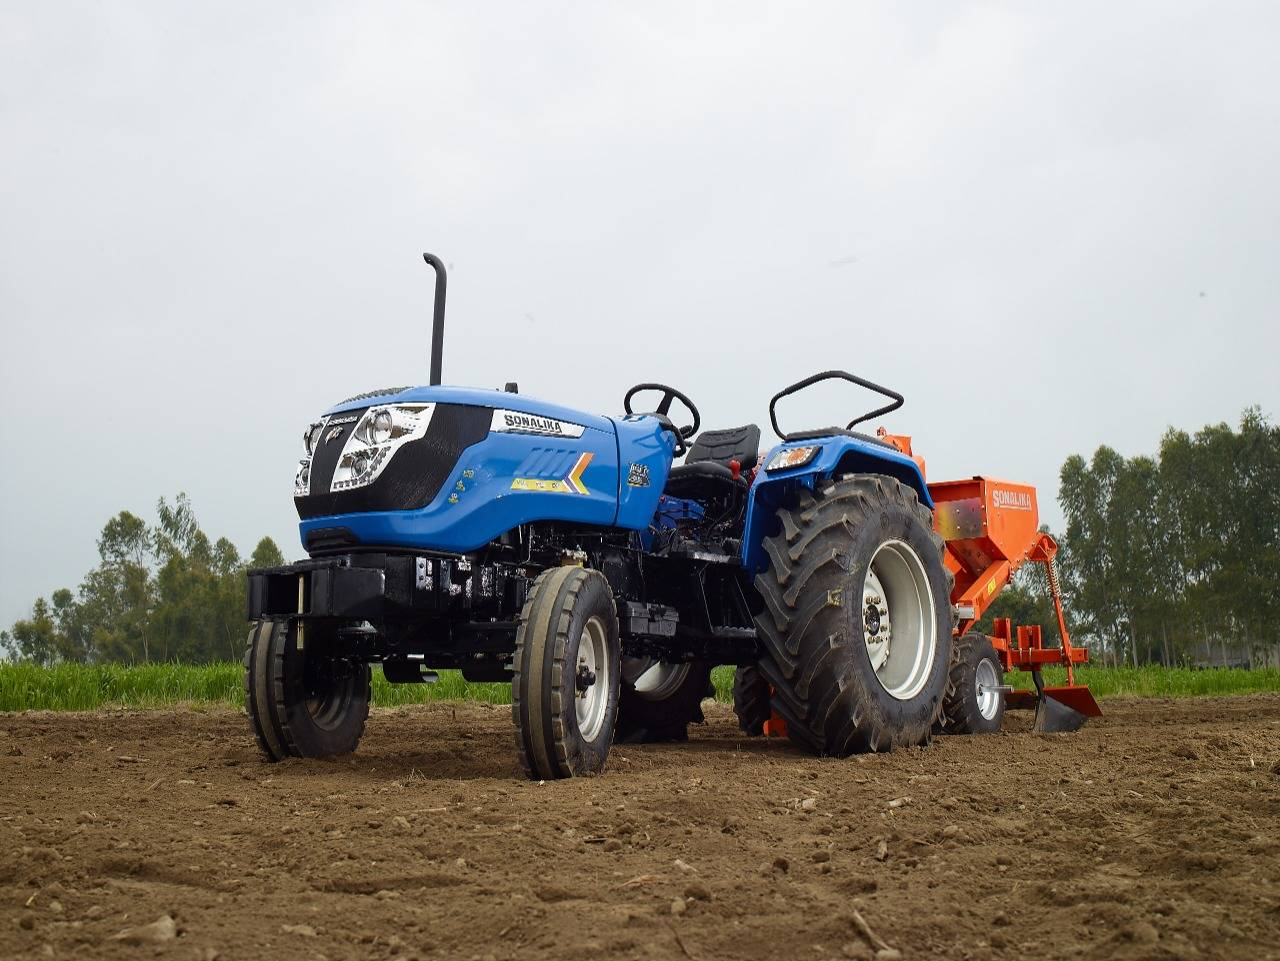 Overall, Sonalika Tractors has sold 13,093 tractors in March 2021, registering a 135% growth over March 2020.